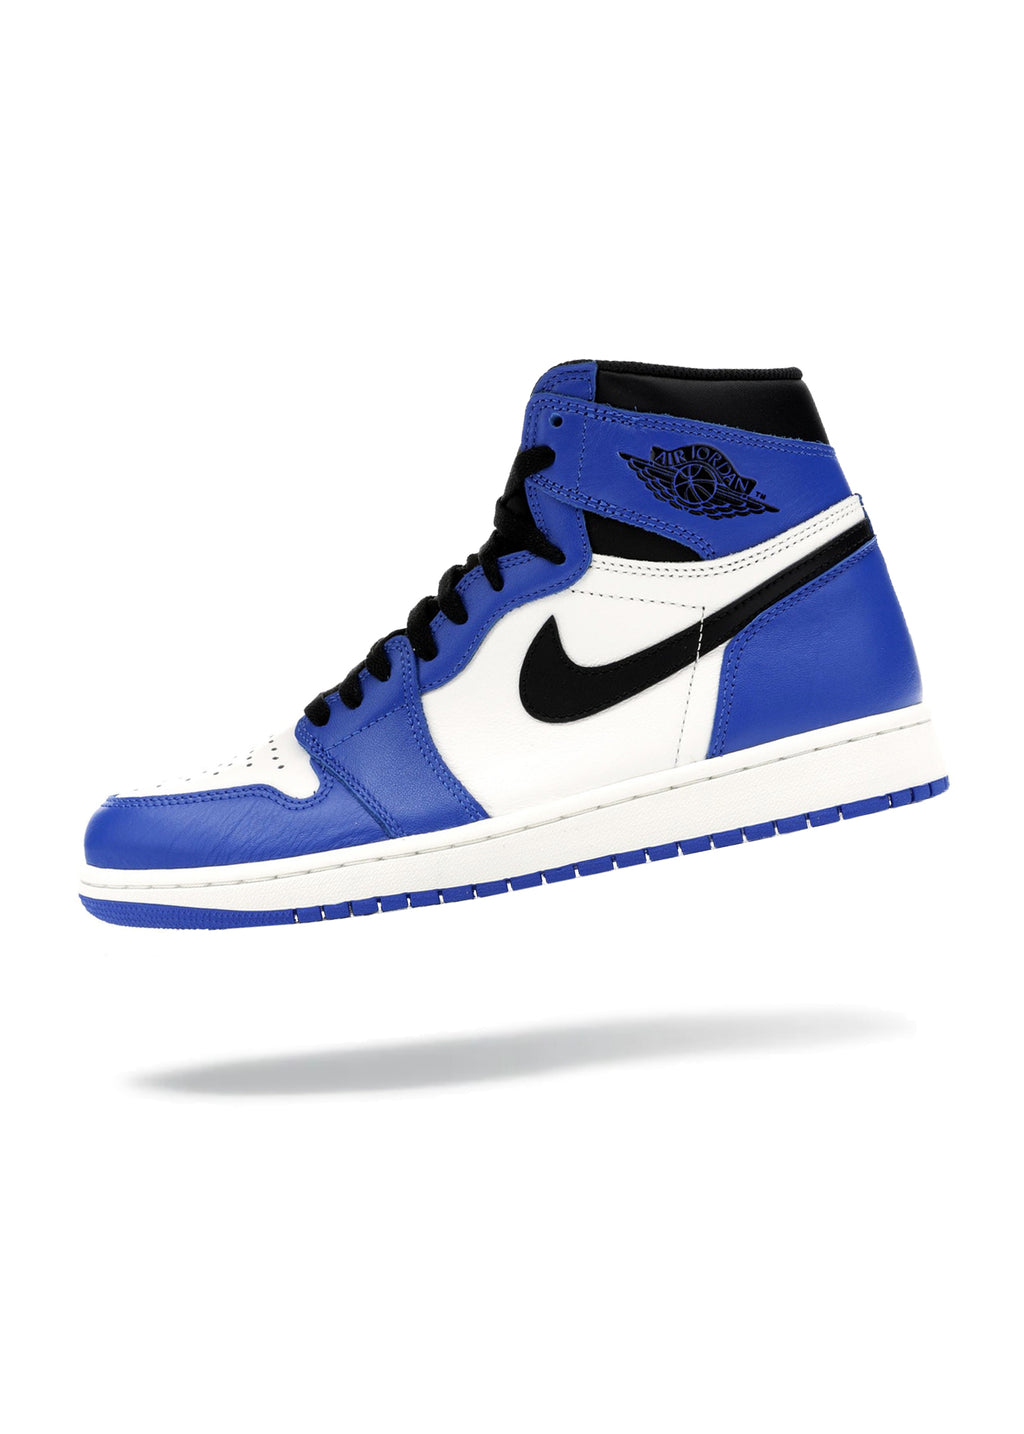 Jordan 1 Retro High Game Royal